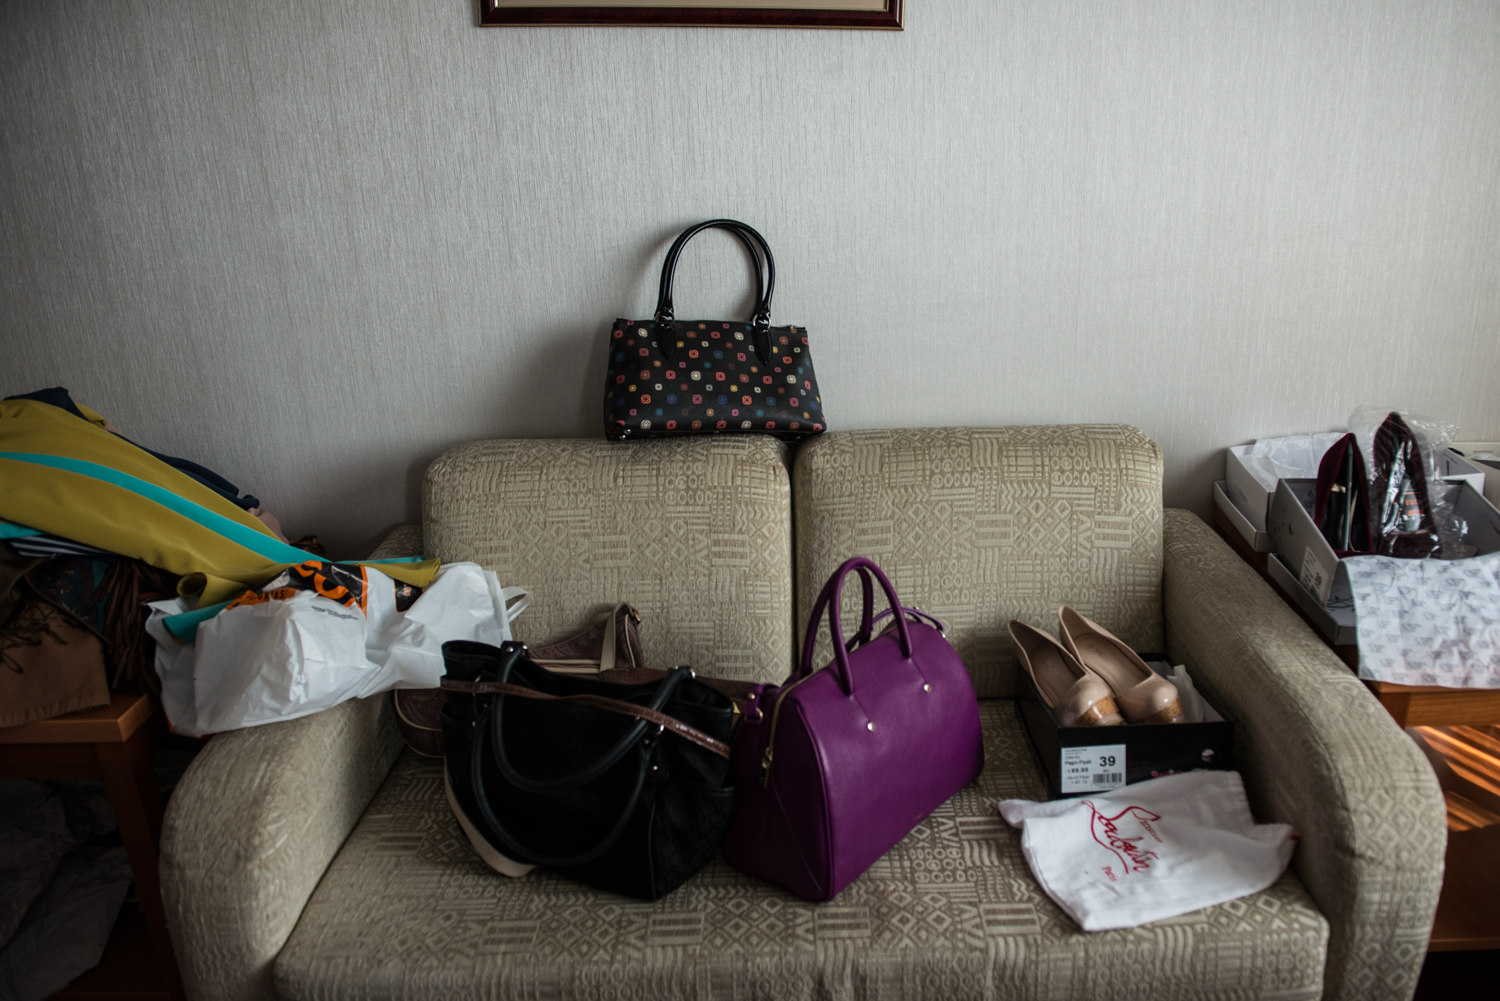 Bags and shoes to be used for a fashion shoot for ALA Magazine, the first magazine in Turkey for conservative women.